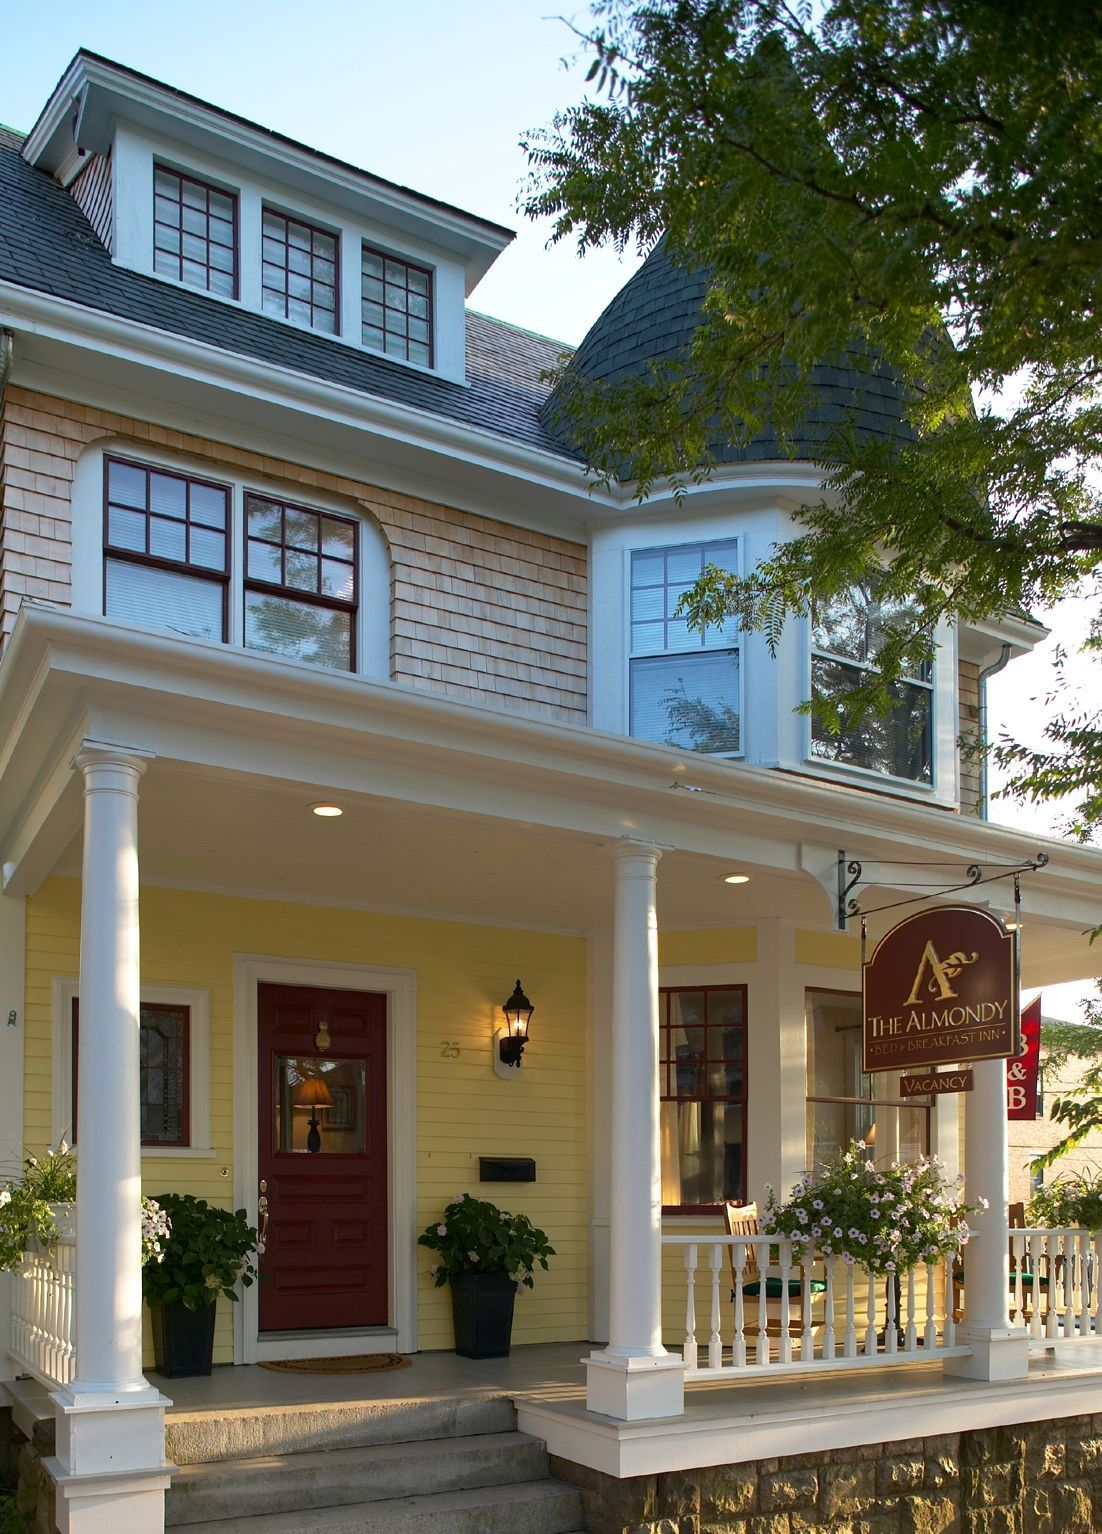 The Almondy Inn is conveniently located in beautiful